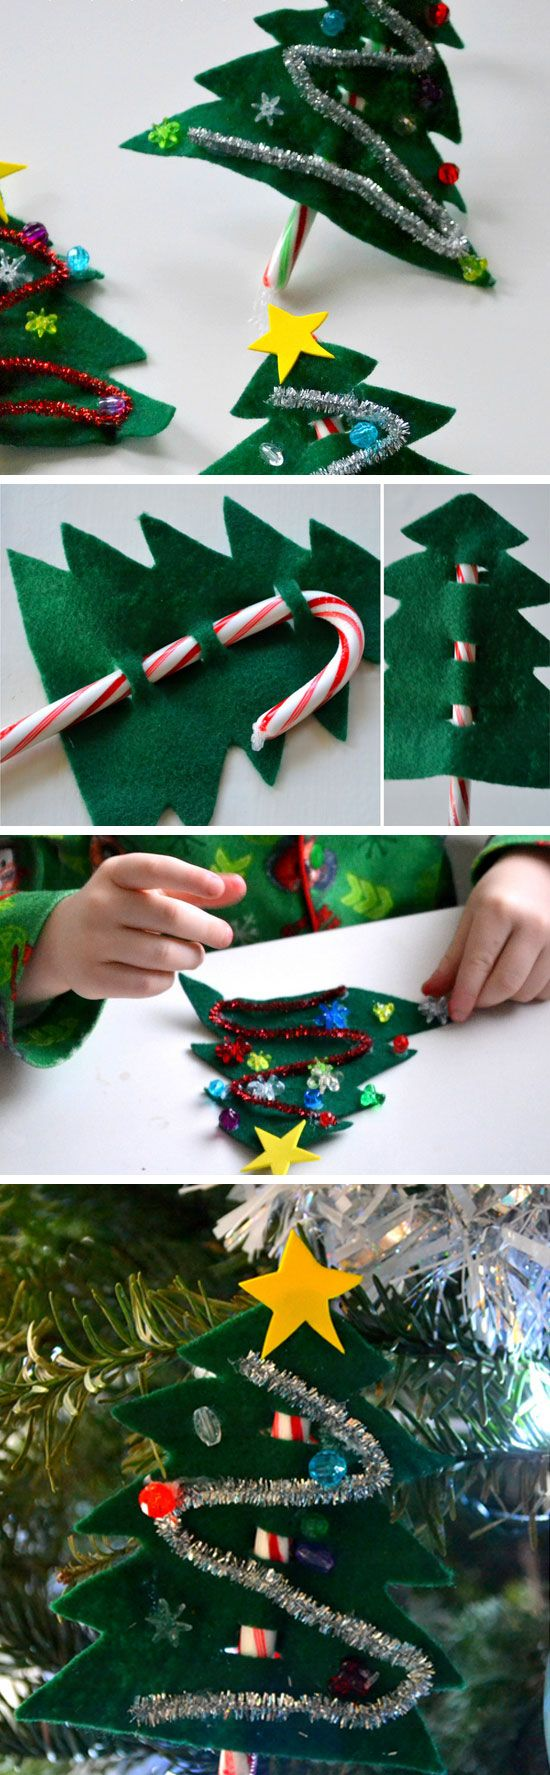 101 handmade christmas ornament ideas - 20 Easy Christmas Decor Ideas For Kids To Make